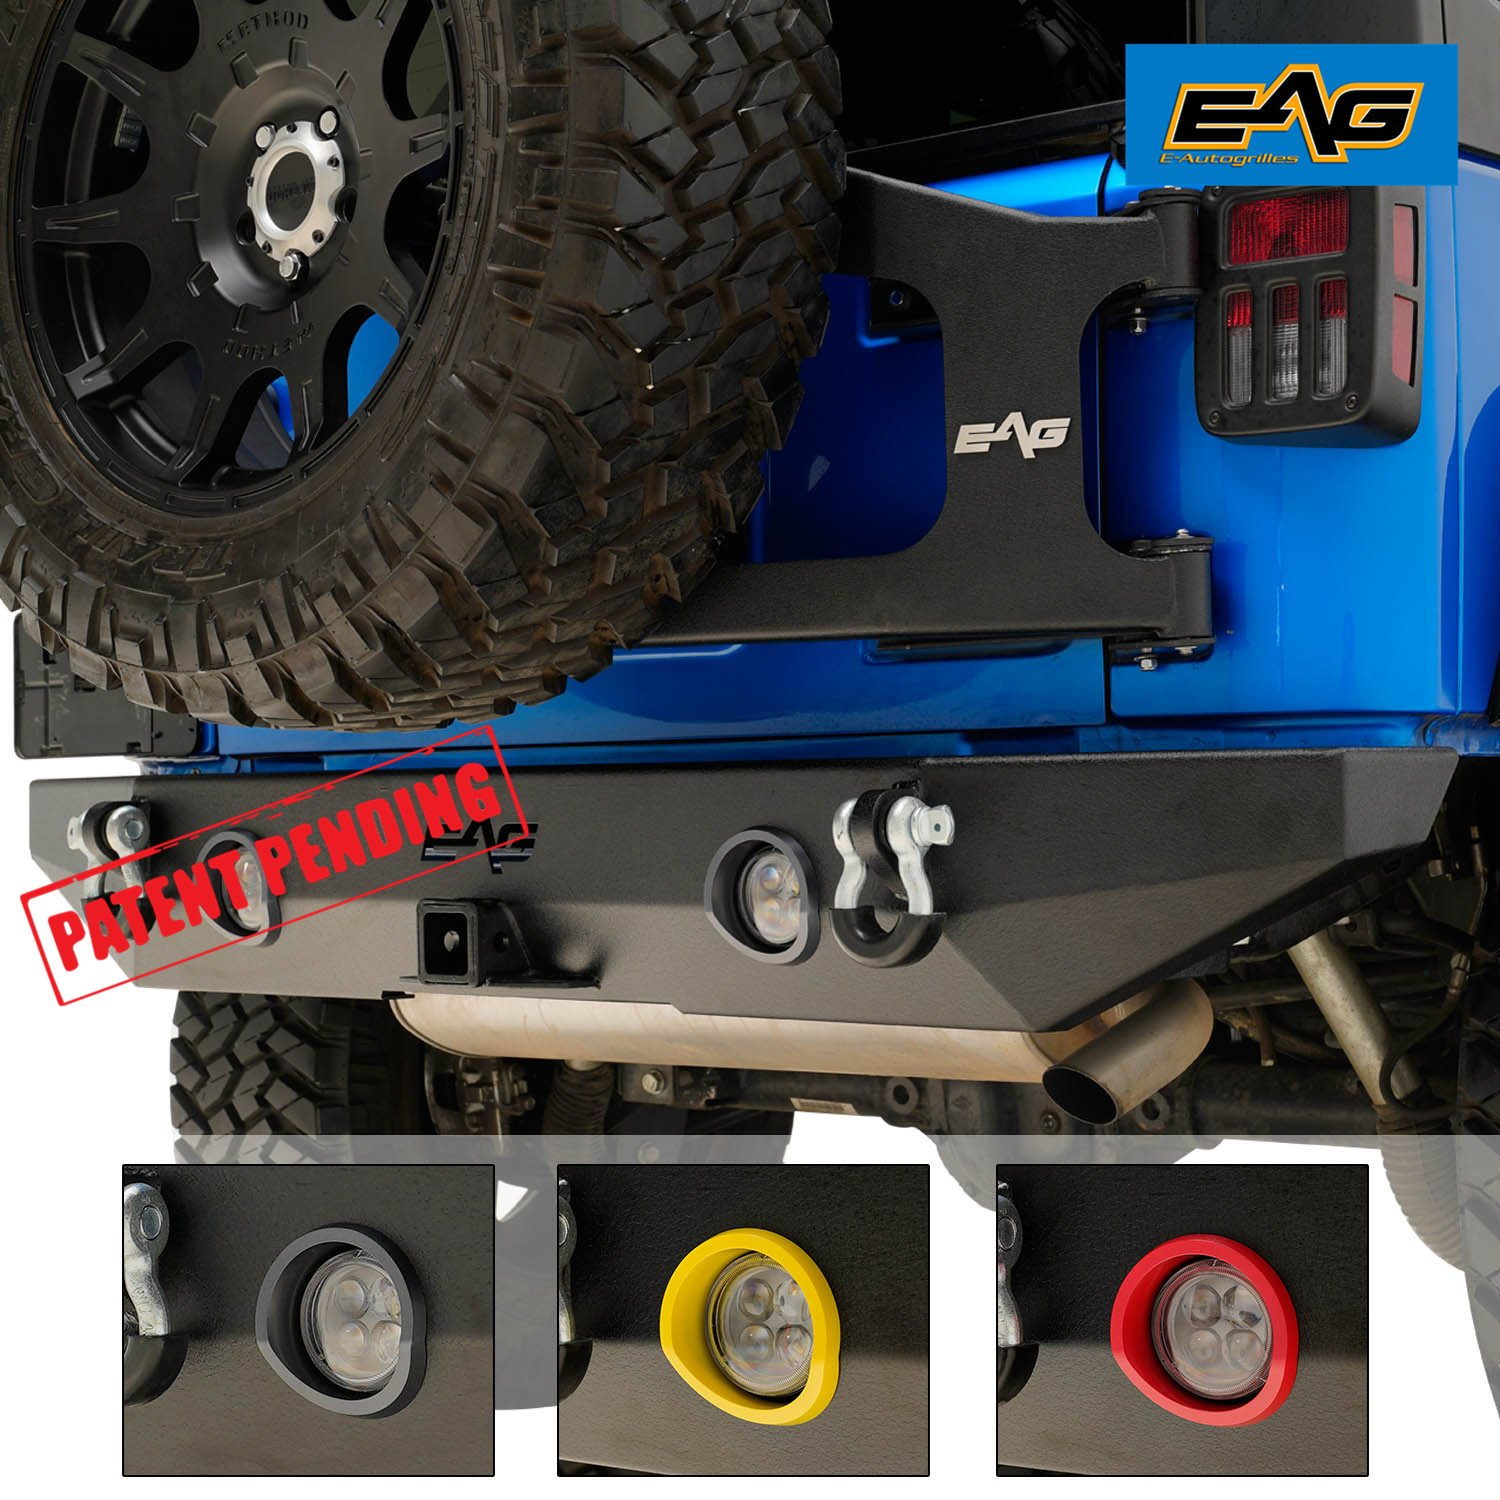 Hitch Wiring Harness For 07 16 Jeep C2 Ae Wrangler | Wiring ... on